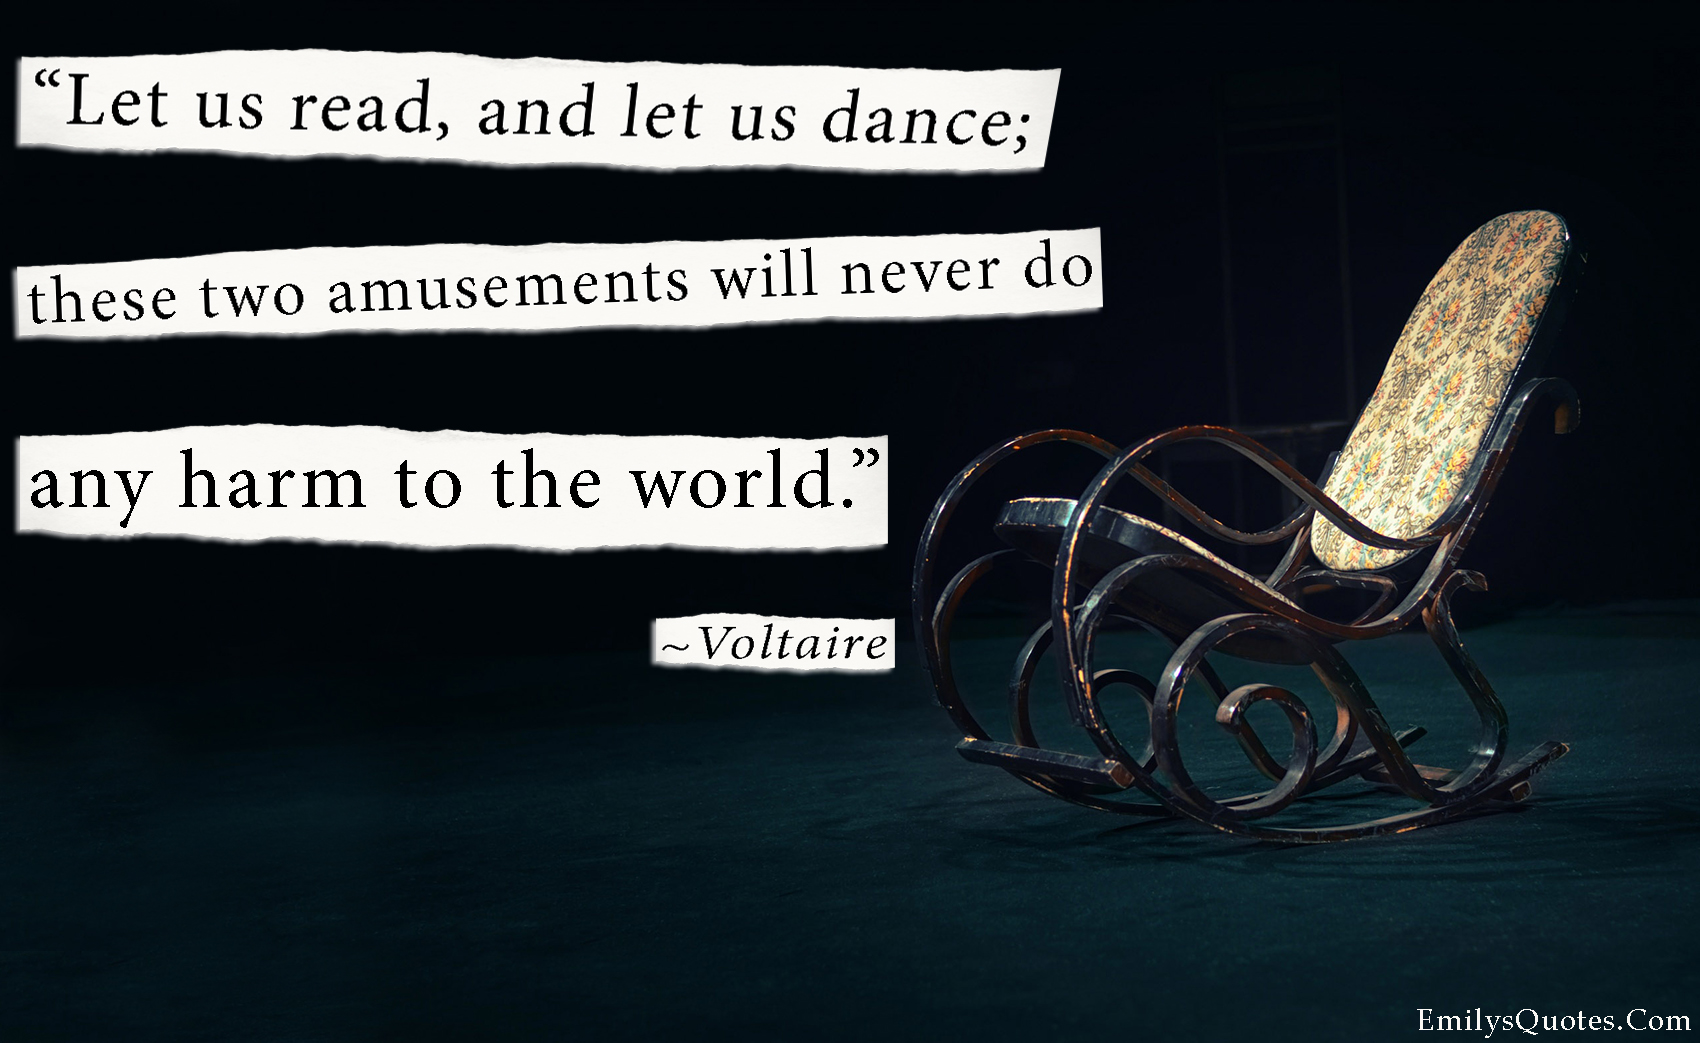 Quotes Voltaire Let Us Read And Let Us Dance These Two Amusements Will Never Do